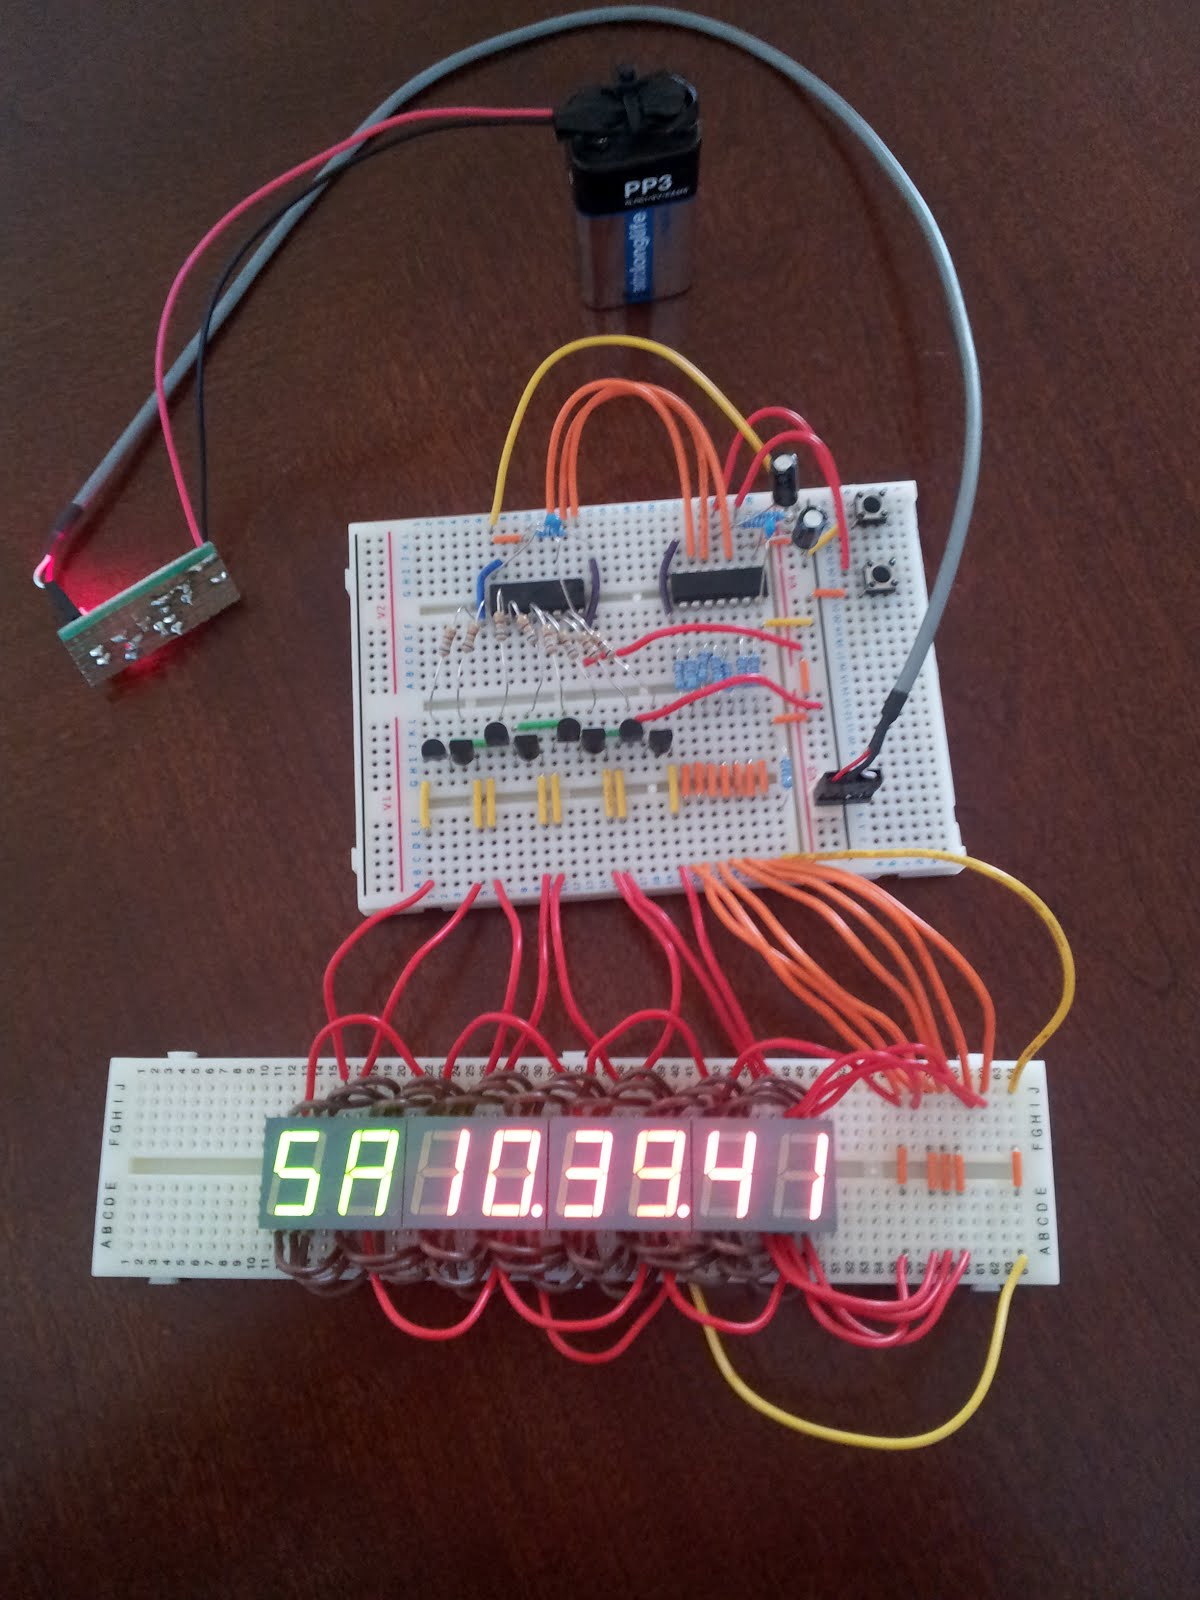 Daves Z80 Journey Circuitlab Arduino 555 Watchdog Circuit With The Additional Displays There Is A Noticeable Flicker As Each One Updated And This Because Delay Between Refreshing Digit Has Doubled